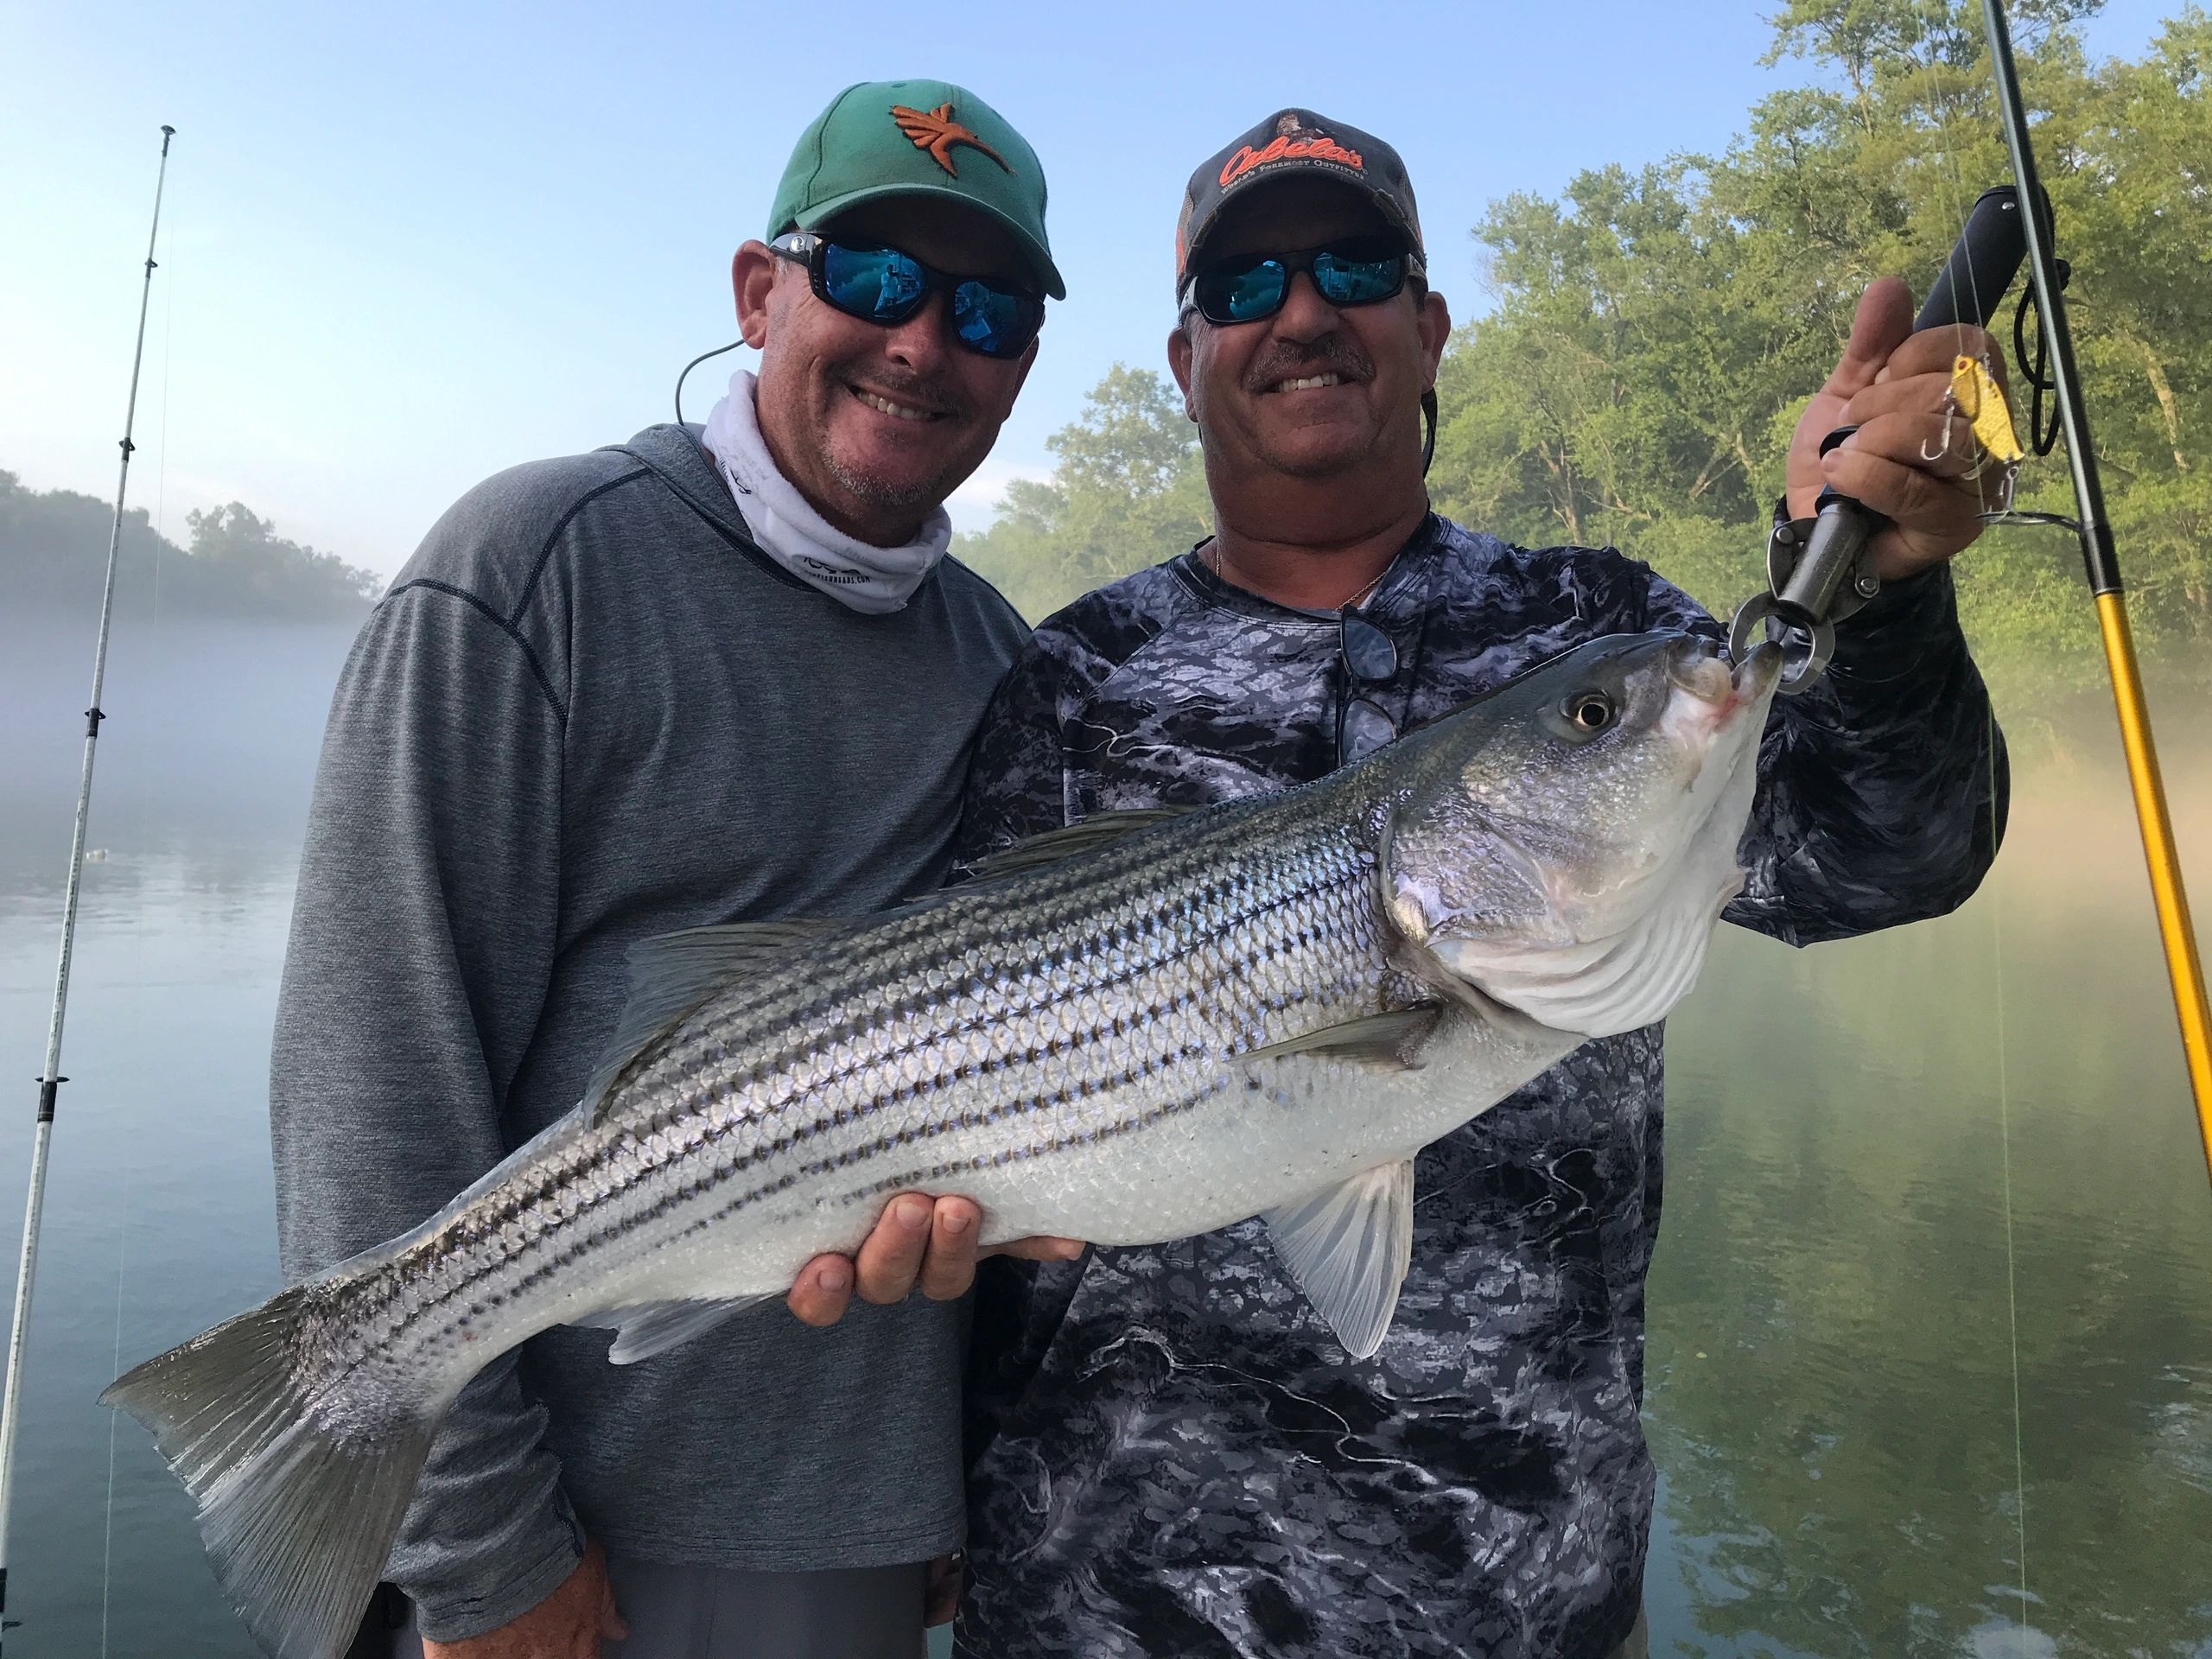 Fishing Guide on Lake Oconee. Striper fishing guide and Hybrid fishing guide.